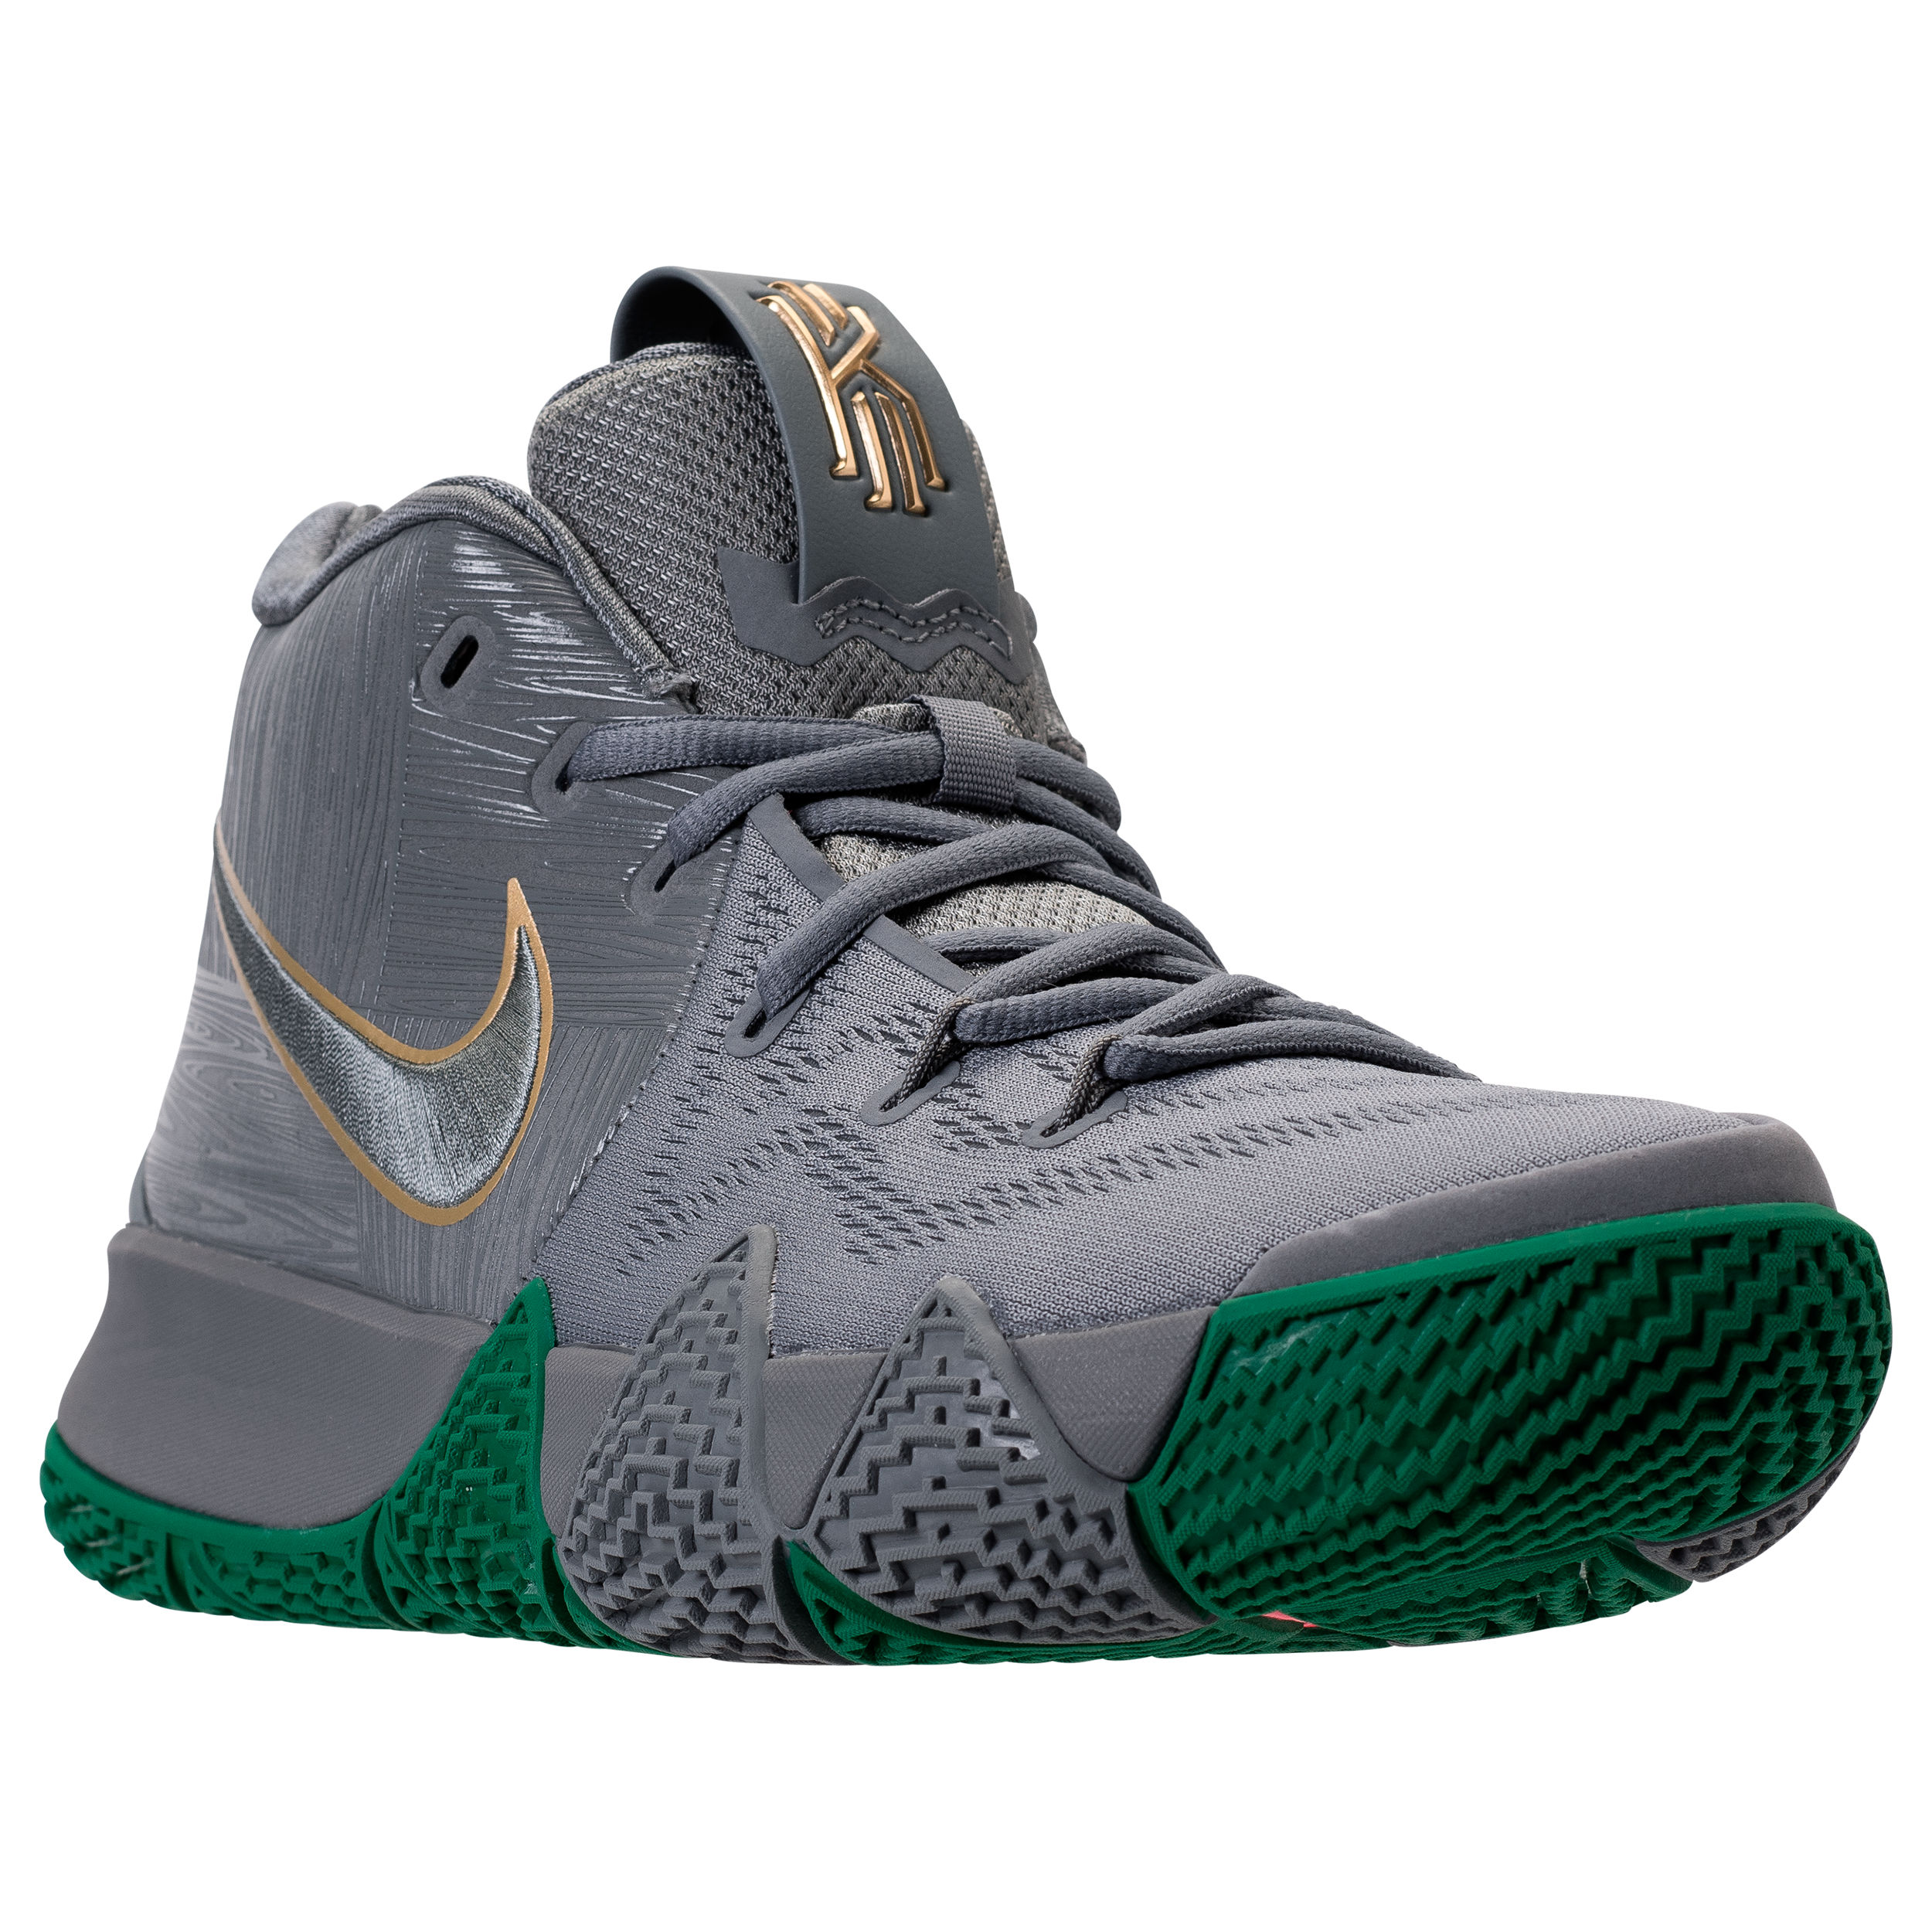 Asociar parrilla Palabra  The Nike Kyrie 4 'City of Guardians' Releases Next Week at Eastbay -  WearTesters